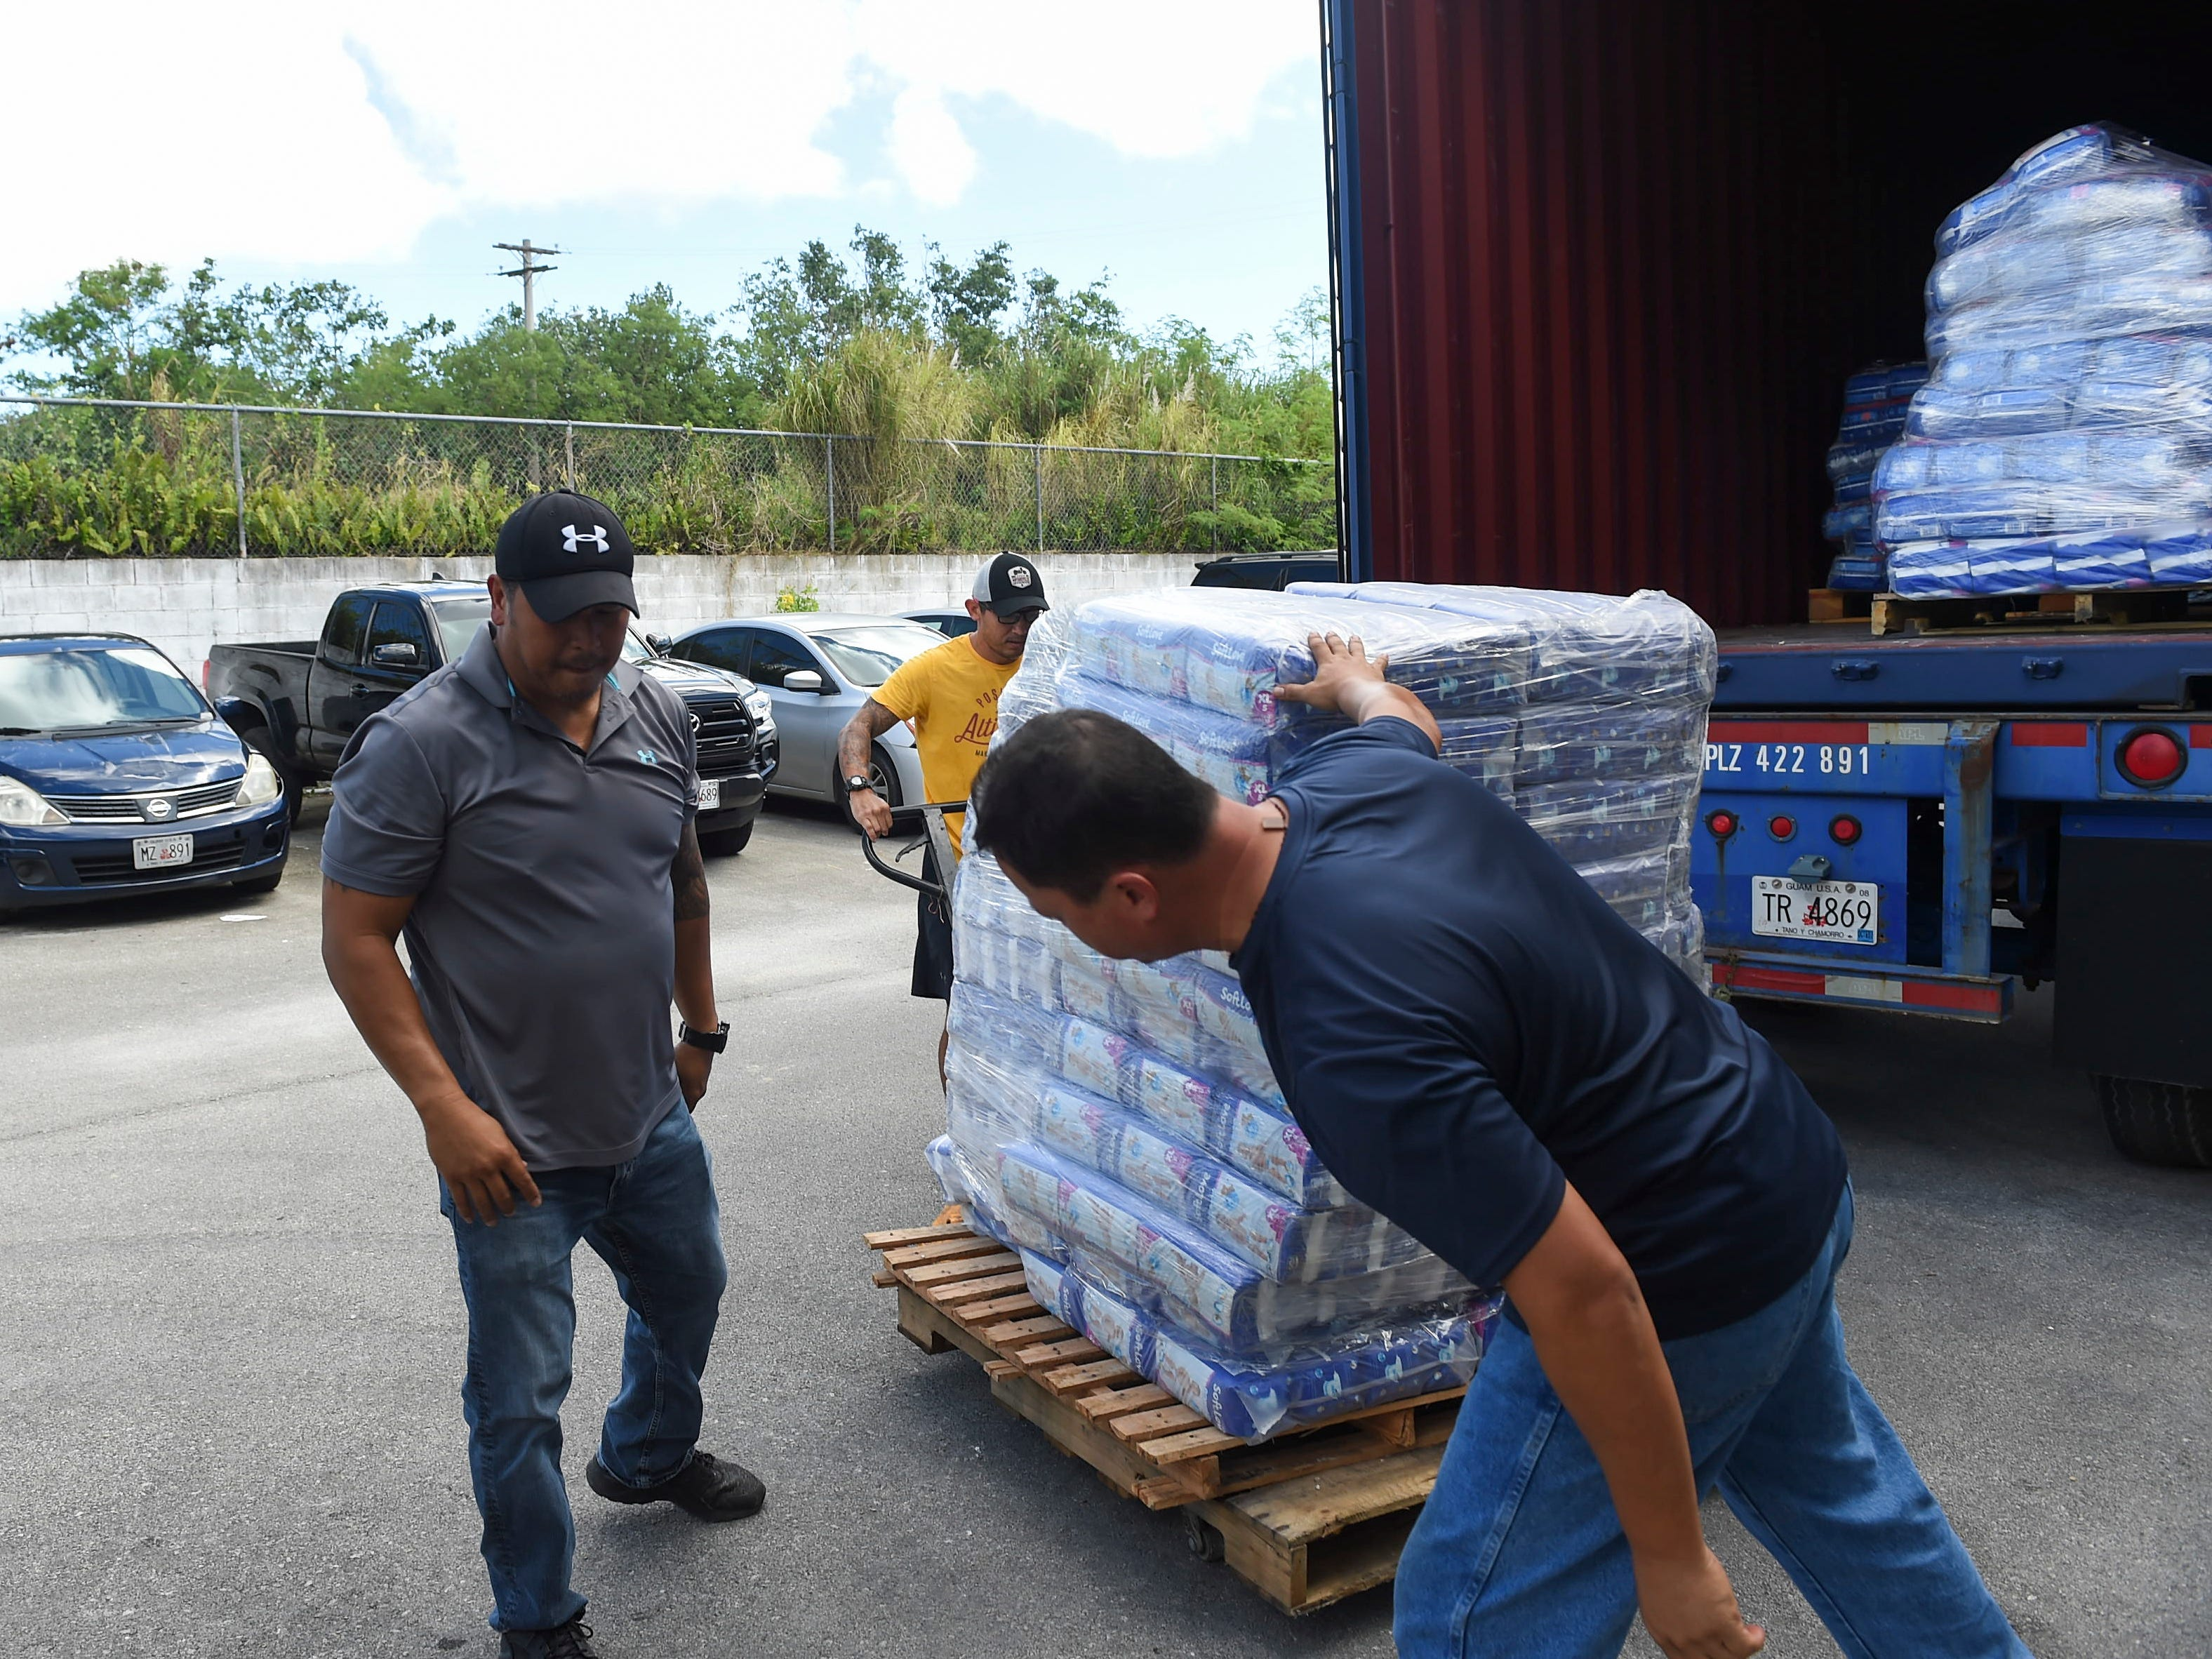 Asia Pacific Wholesalers General Manager Peter Aguon, left, Delta Tire and Lube employee Gerry Gutierrez, center, and Delta Tire and Lube General Manager Jerry Francisco help transport pallets of donations for CNMI residents at the Asia Pacific Wholesalers warehouse on Nov. 12, 2018.